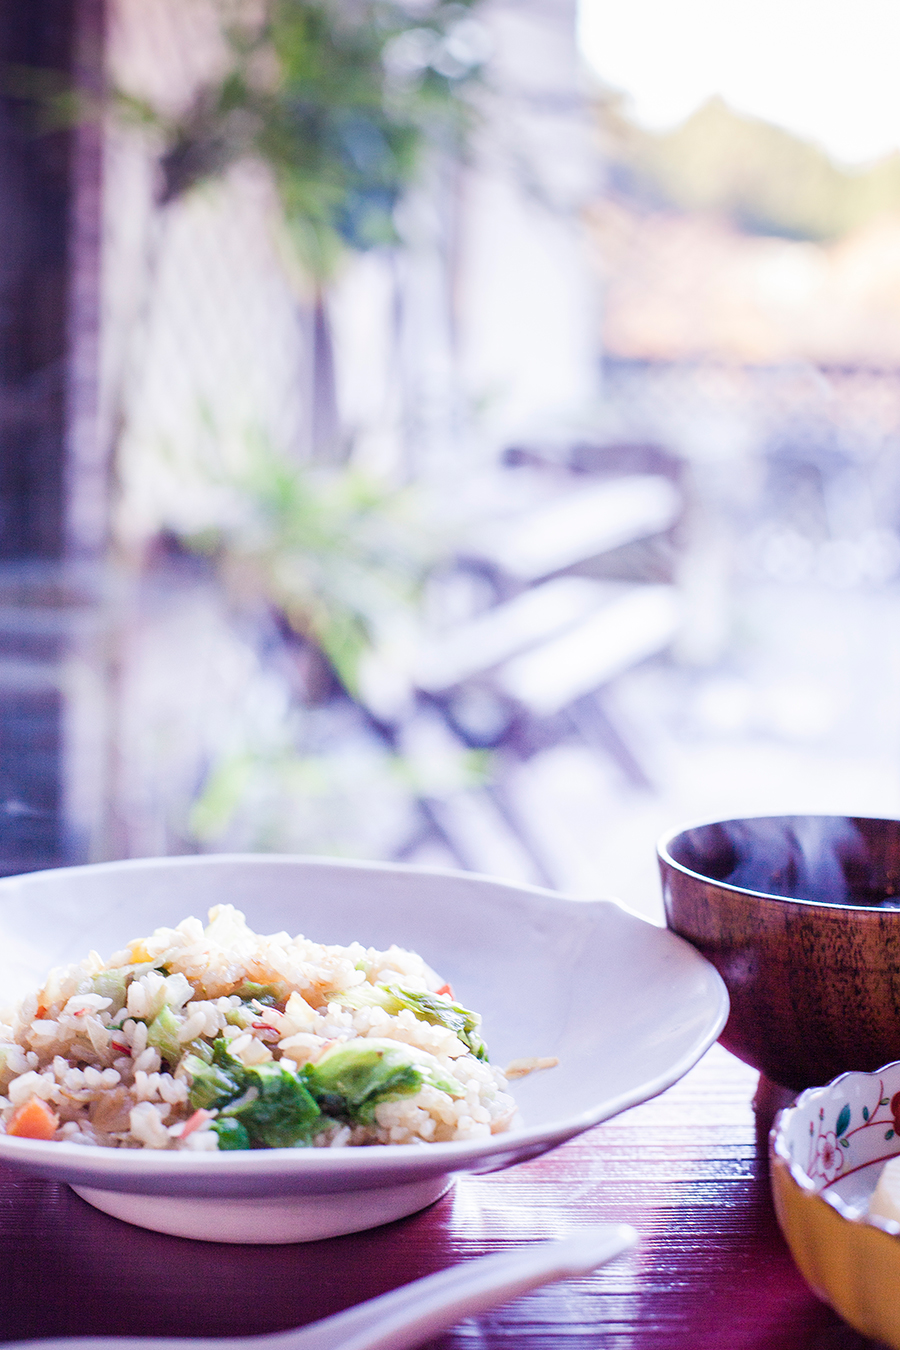 Breakfast at our Kyoto Airbnb: fried rice chahan, miso soup.